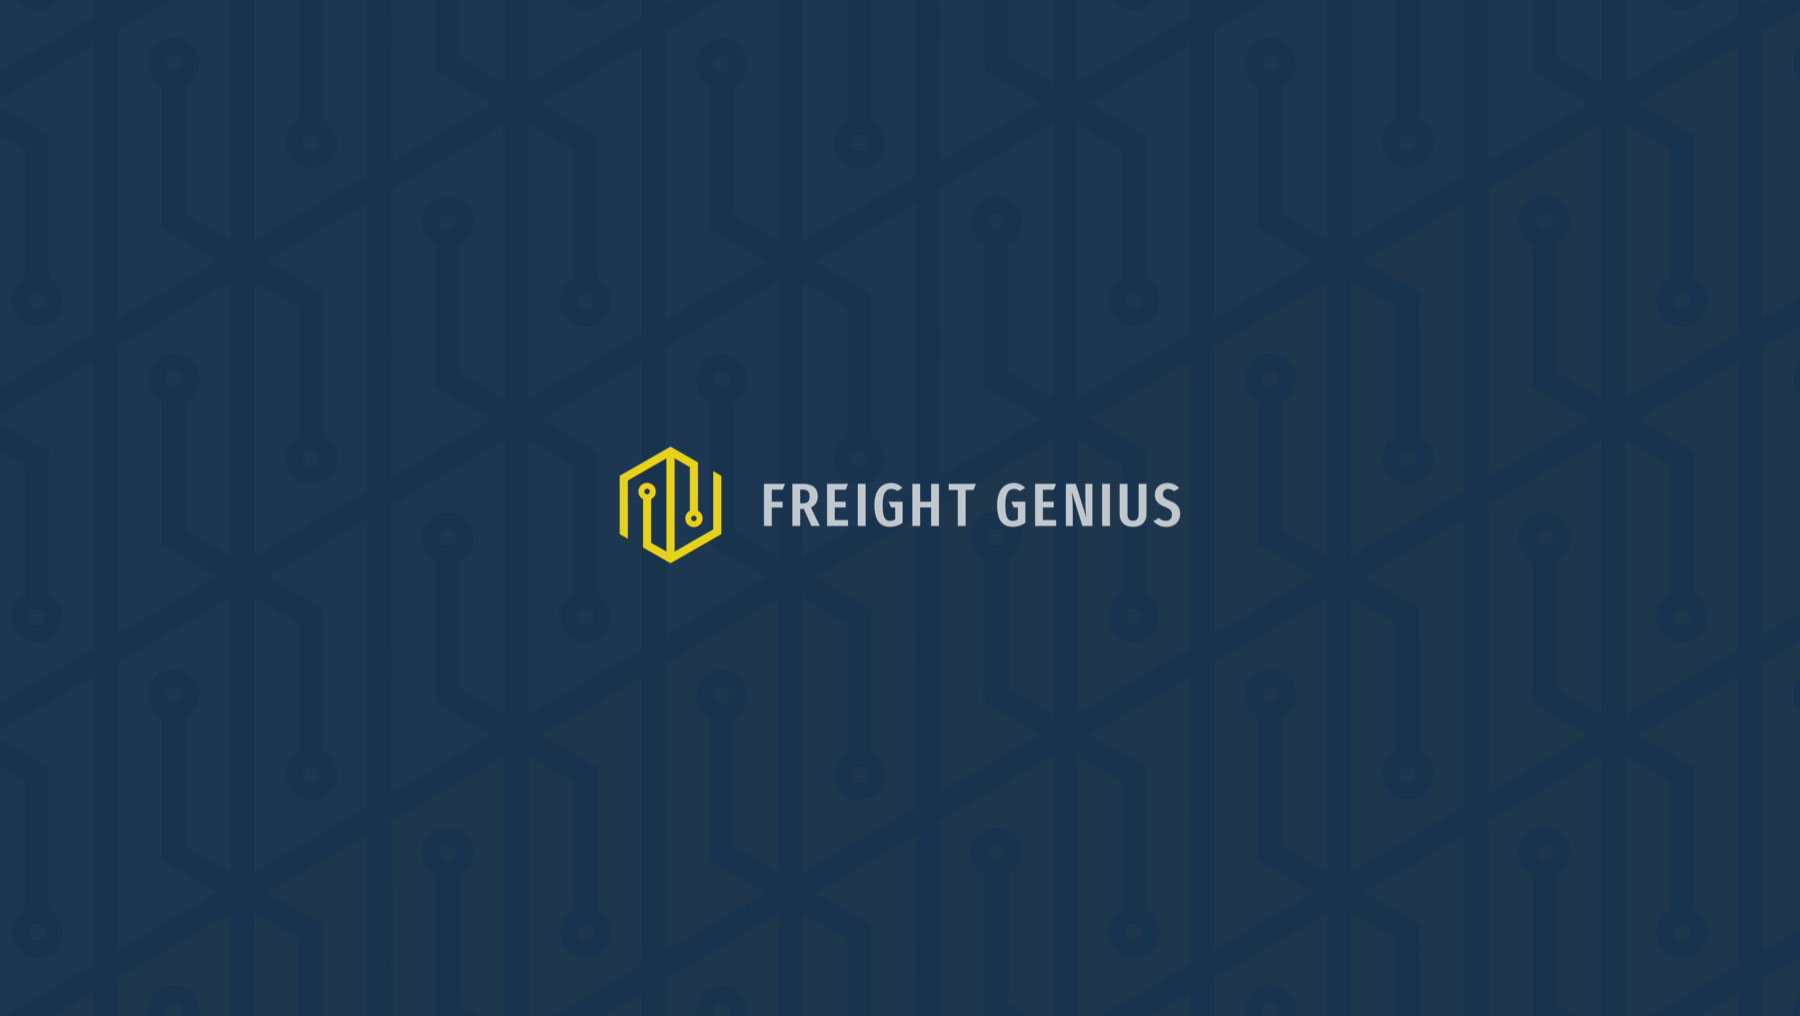 freight genius logo on patterned background